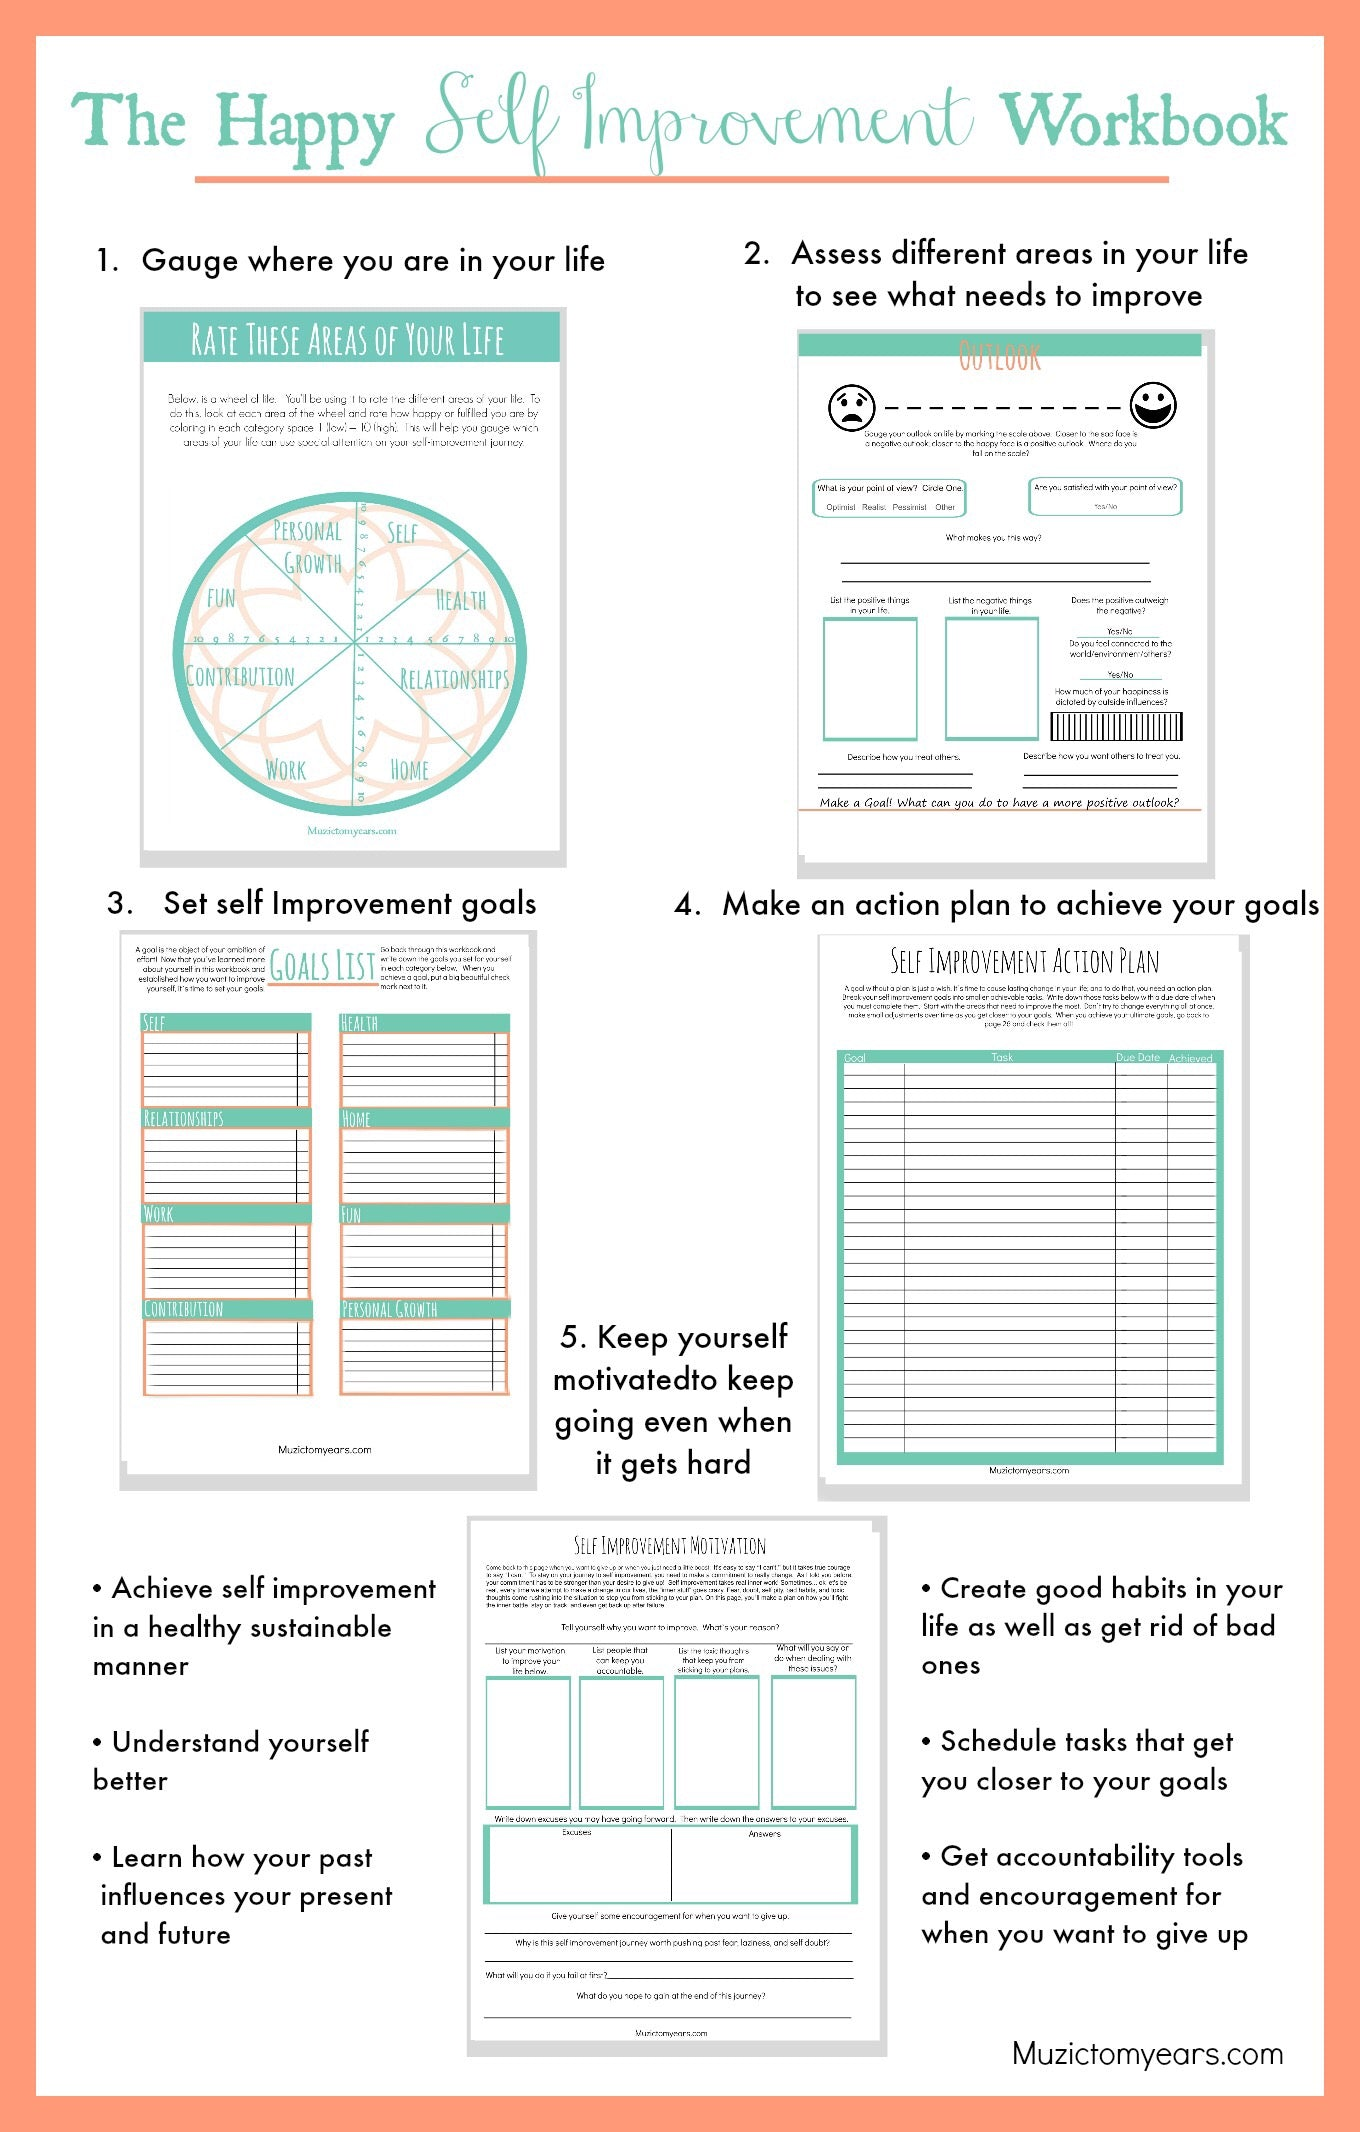 Worksheets Self Improvement Worksheets the happy self improvement workbook printable digital file muzic right carousel arrow